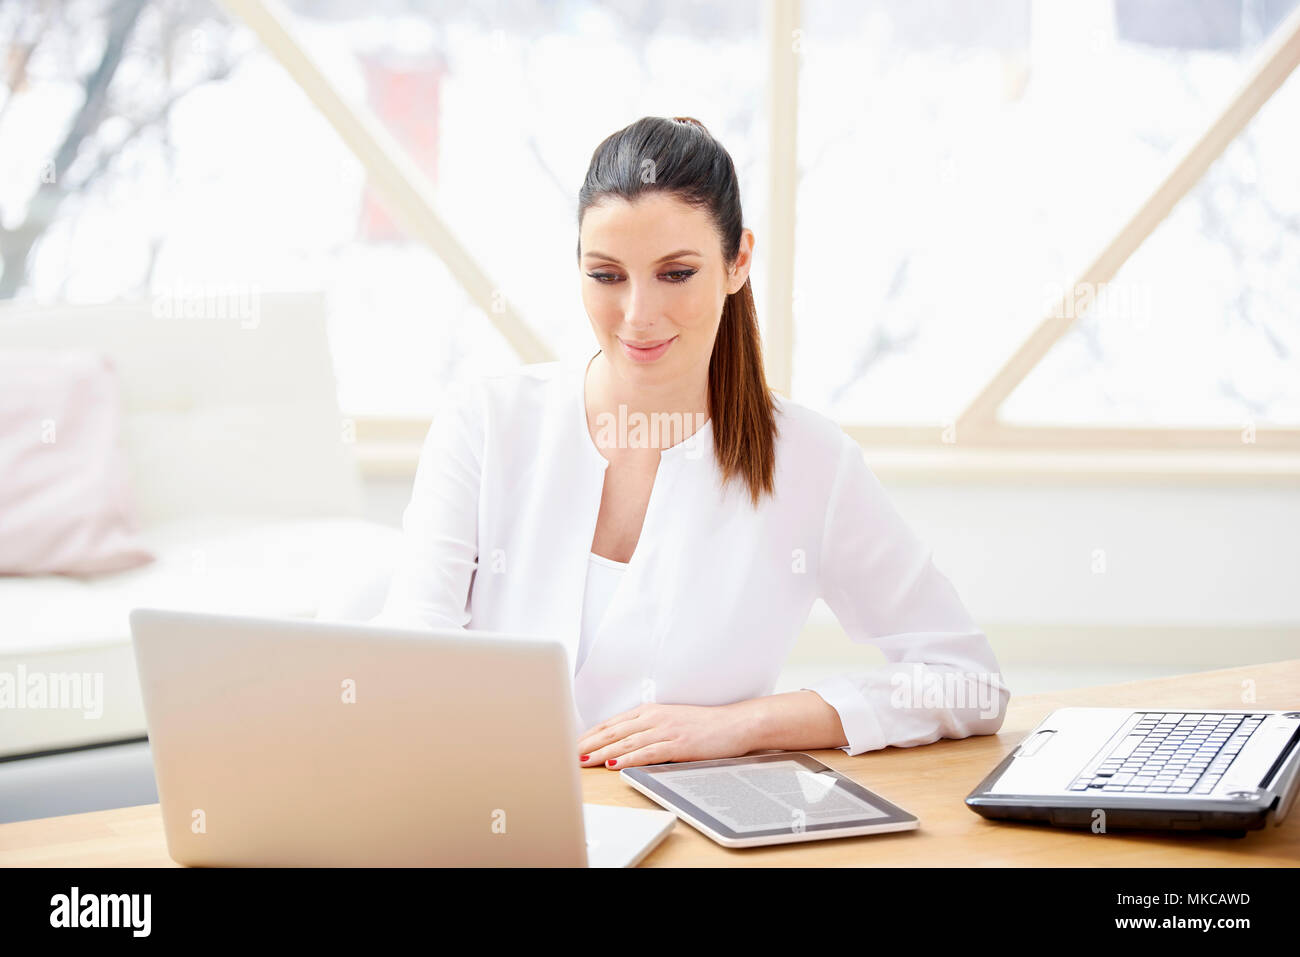 Beautiful young woman sitting at office desk behind computers and managing her business. Home office. - Stock Image